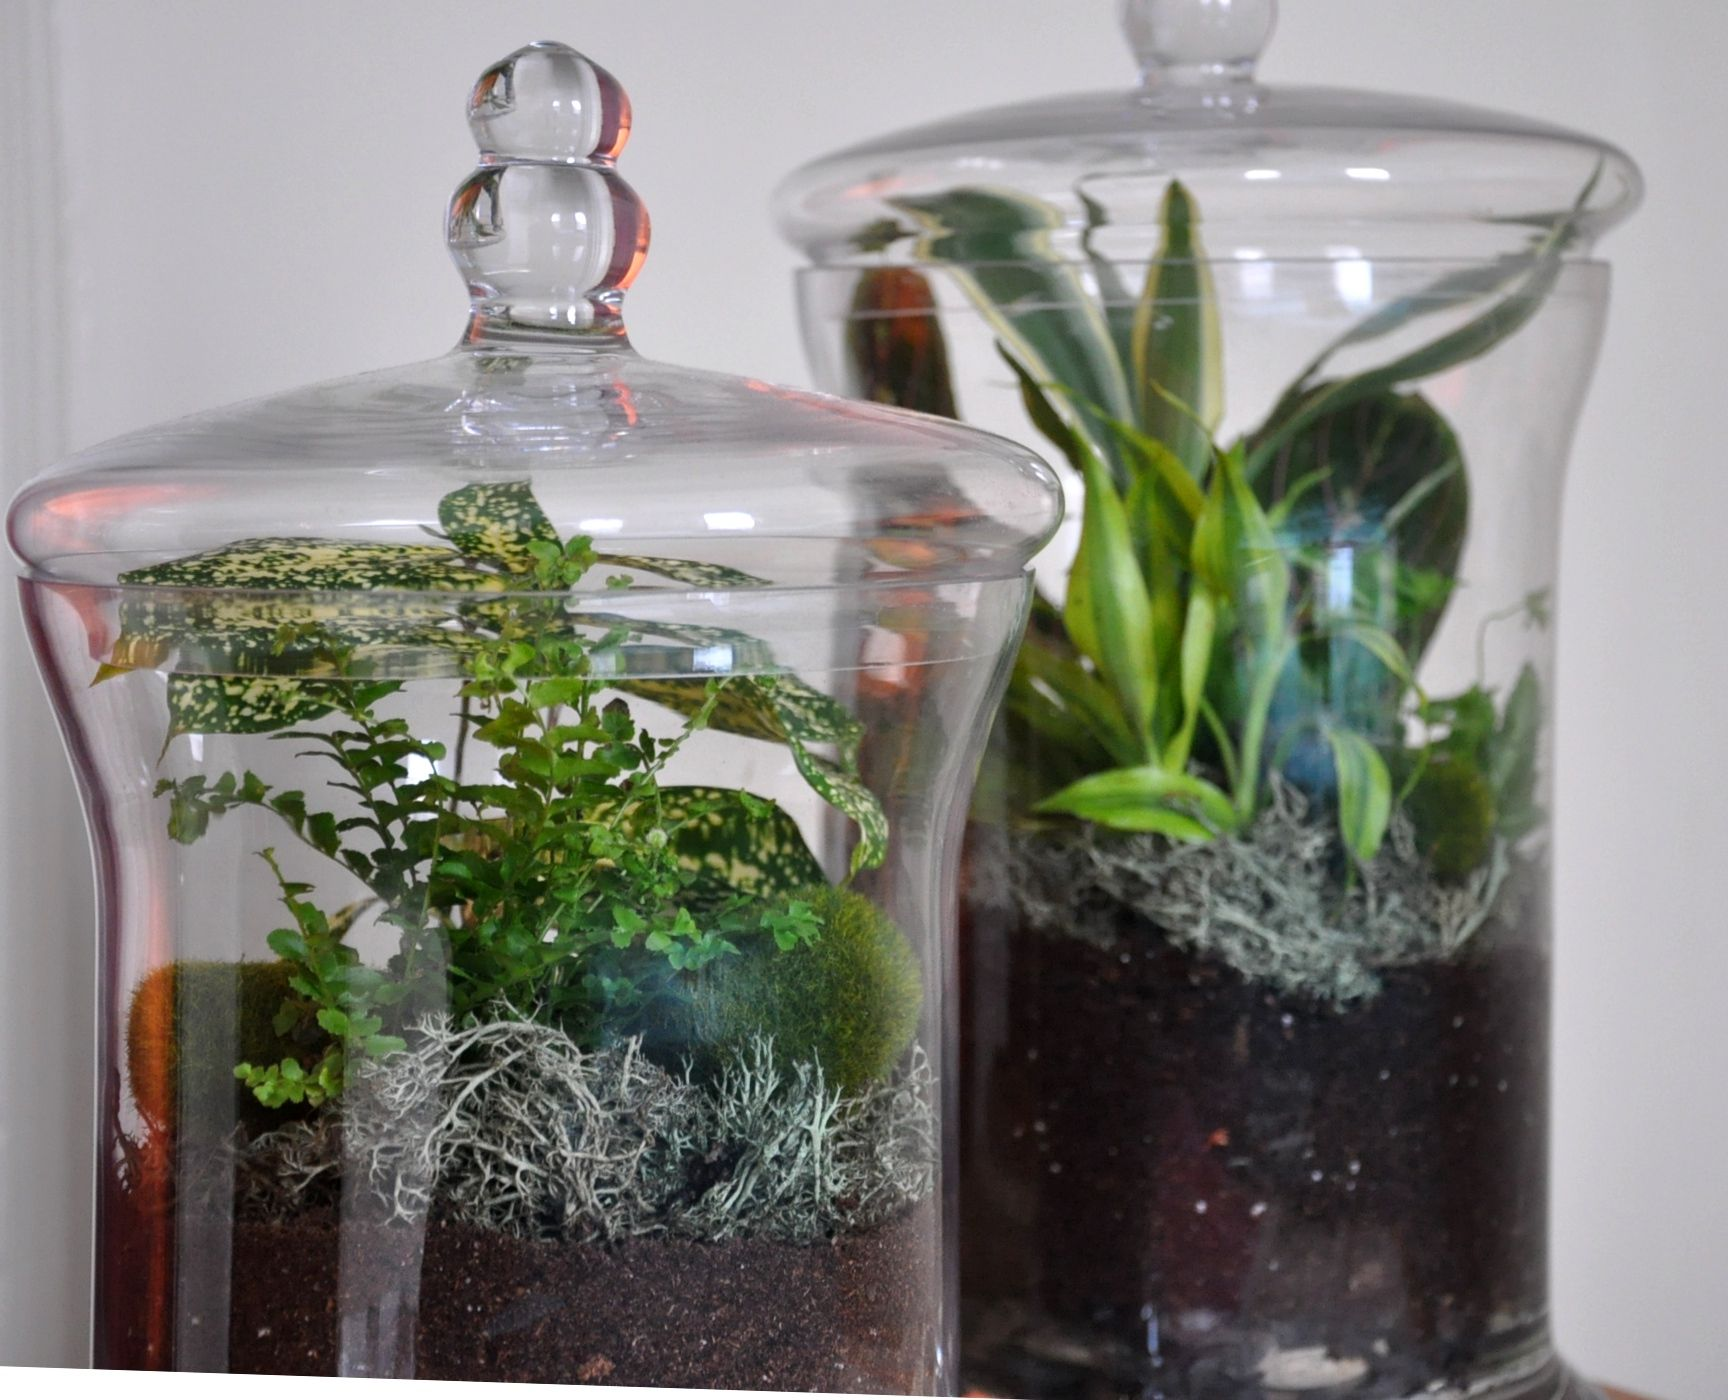 My Own Little Garden Within An Apothecary Jar